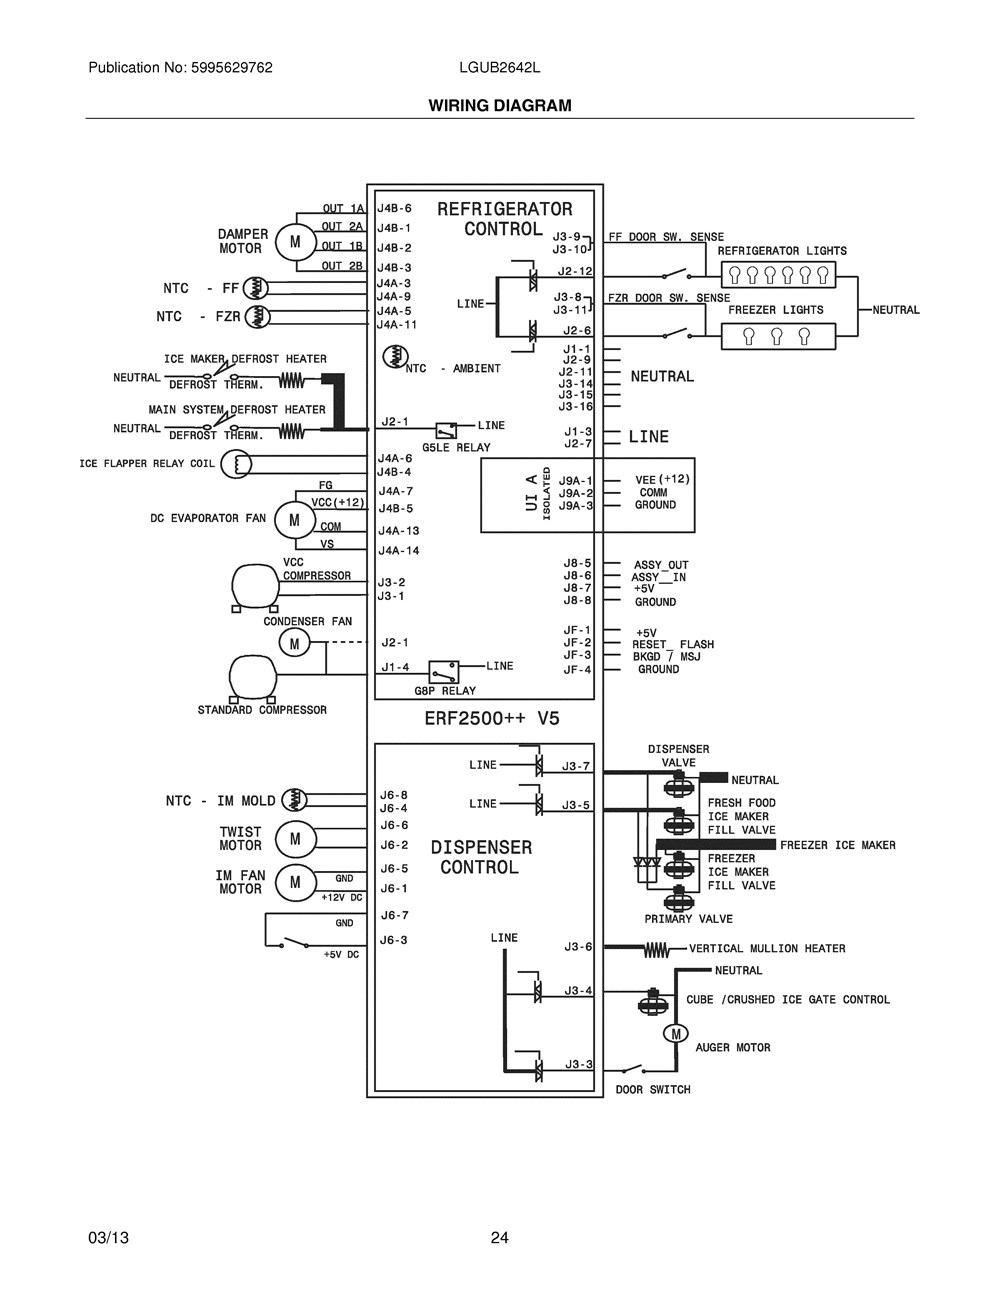 Awesome very best simple wiring diagram for frigidaire pretty very best simple wiring diagram for frigidaire refrigerator asfbconference2016 Image collections